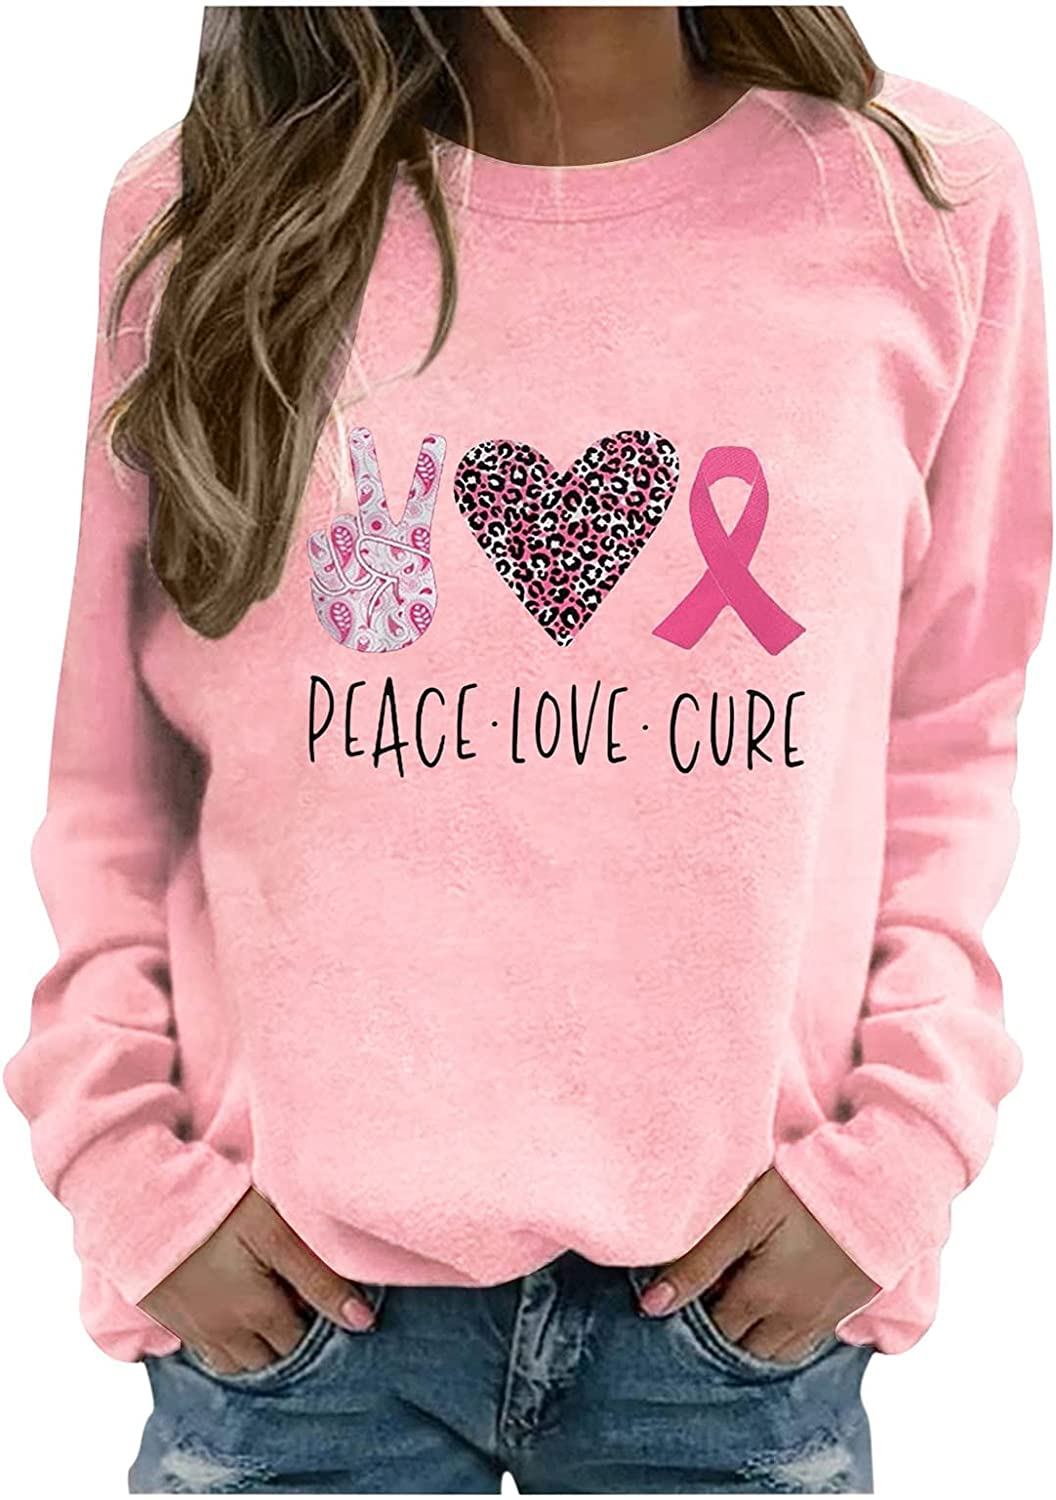 Winter Women's Casual Long Sleeve O-Neck Heart Printed Ladies None-Liner Sweatshirts Loose Fitting Comfy Tops Hoodies